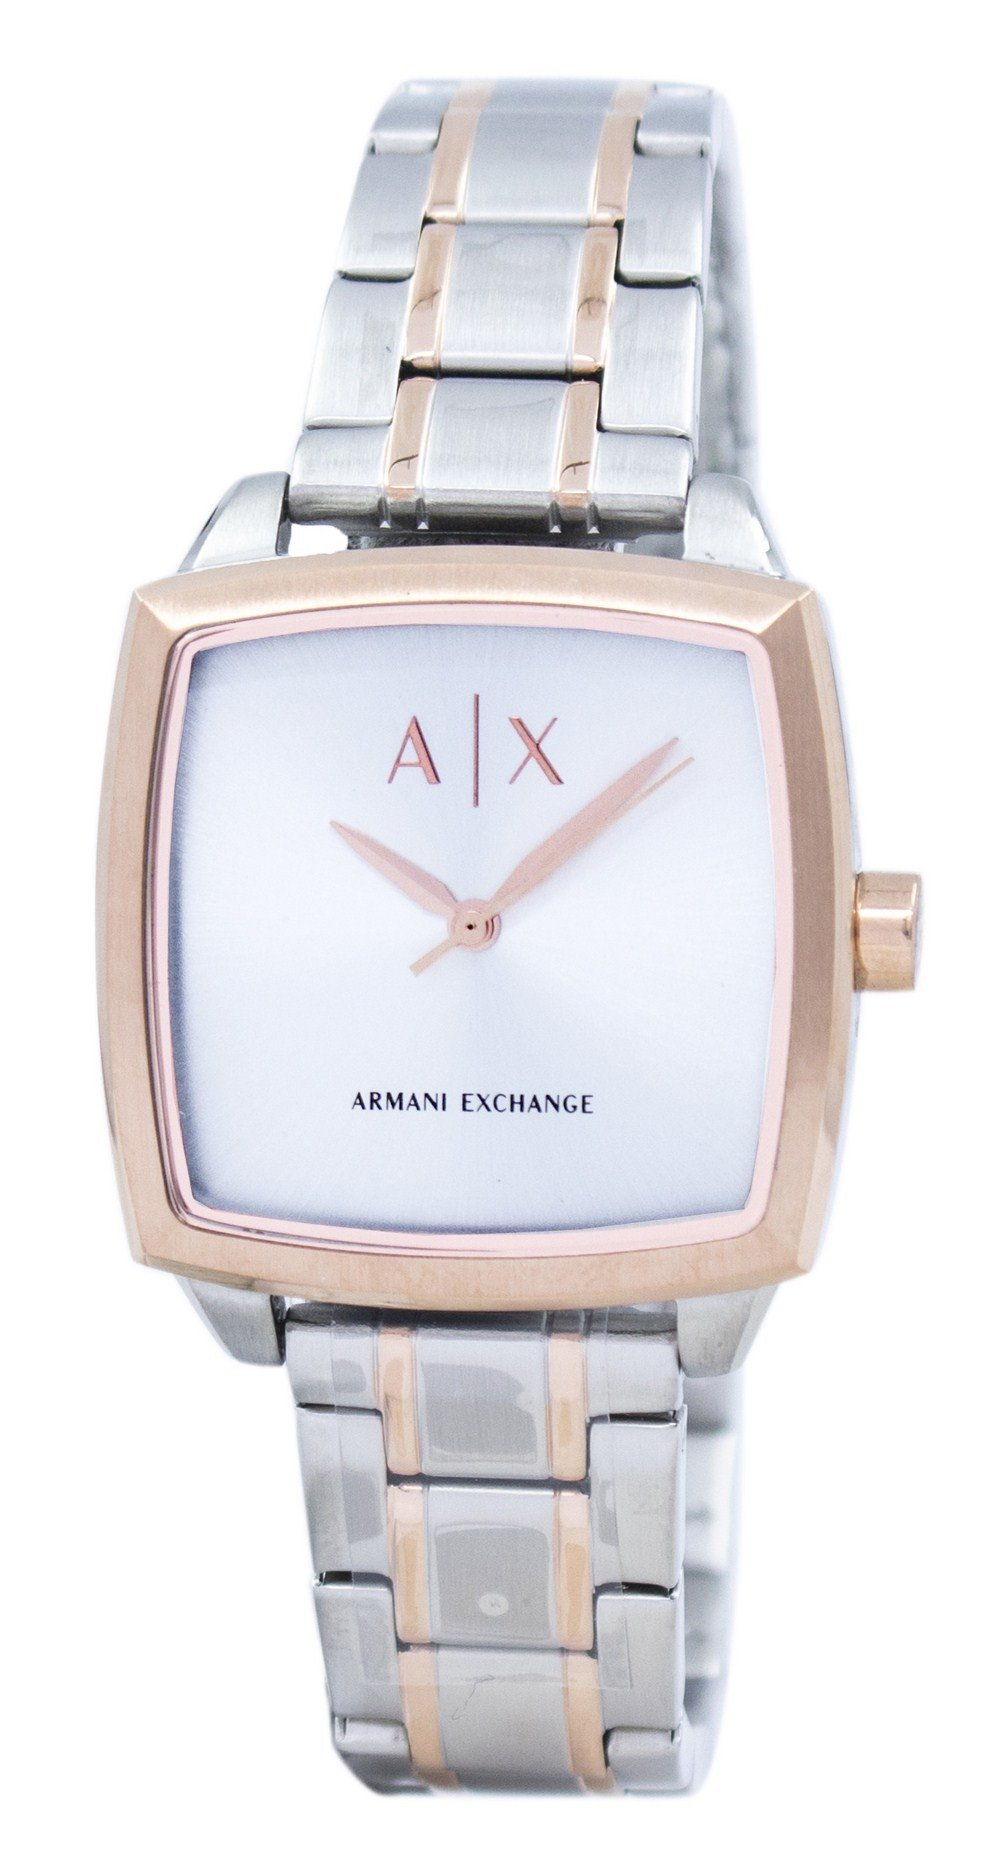 Armani Exchange Analog Quartz AX5449 Women's Watch, best prices, cheapest, discount, new, Cruze Watches